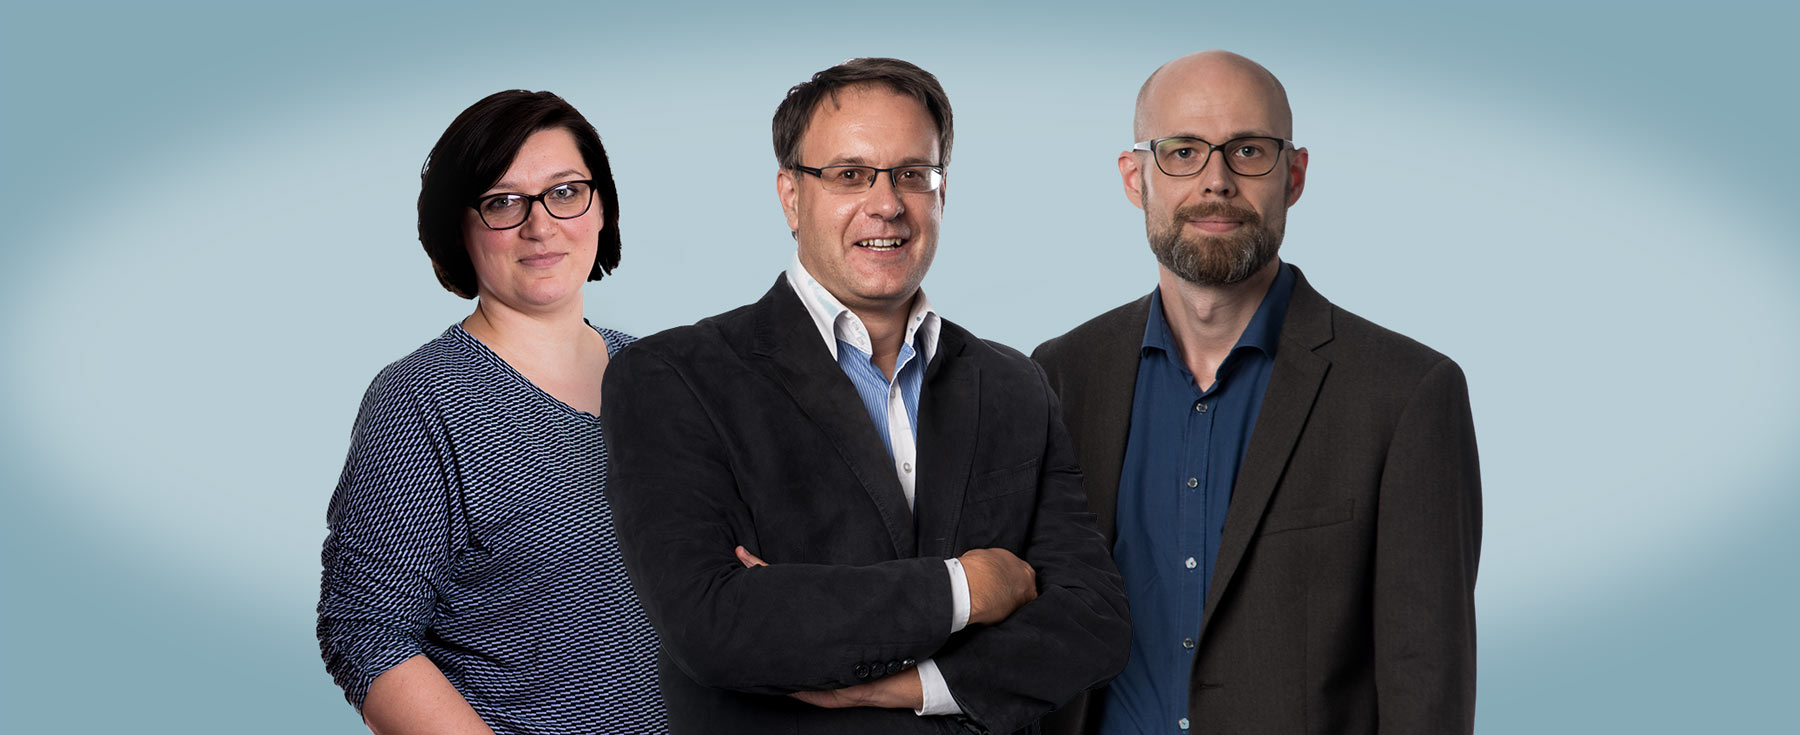 all-in-personalberatung-team-2020-herbst-bl